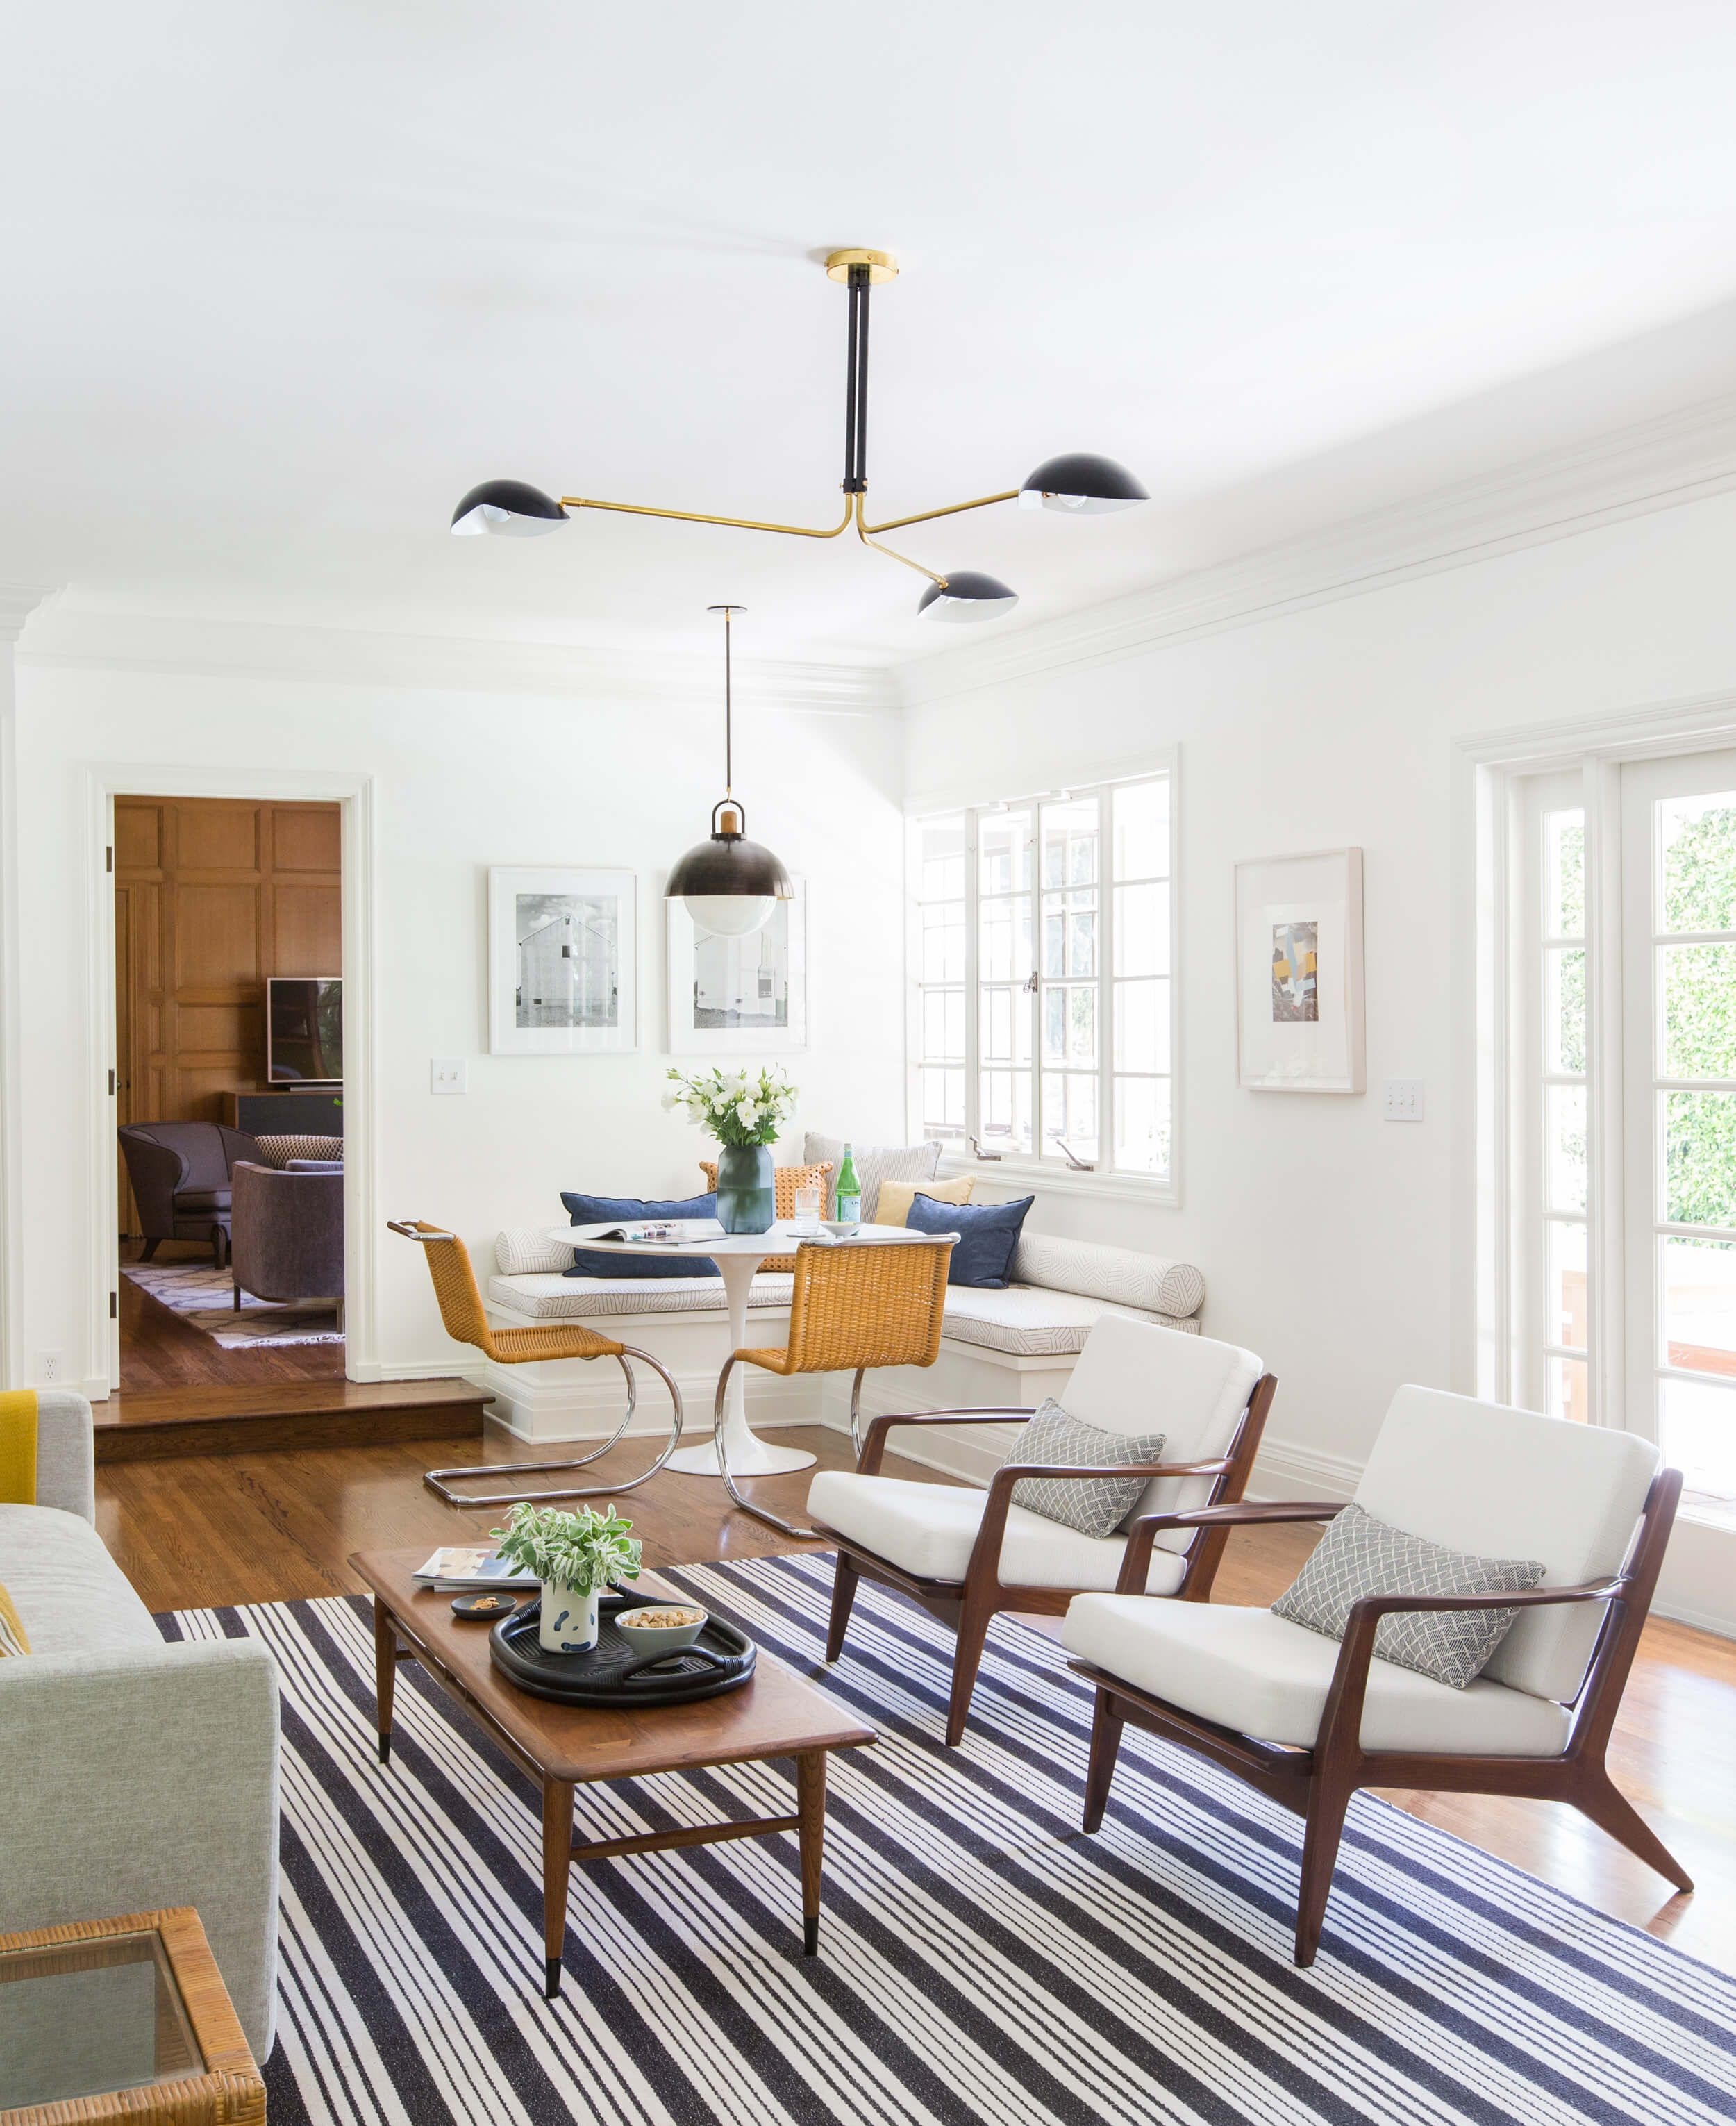 A Decorating Style That Doesn T Get Dated: A Durable And Family Friendly Sunroom Doesn't Need To